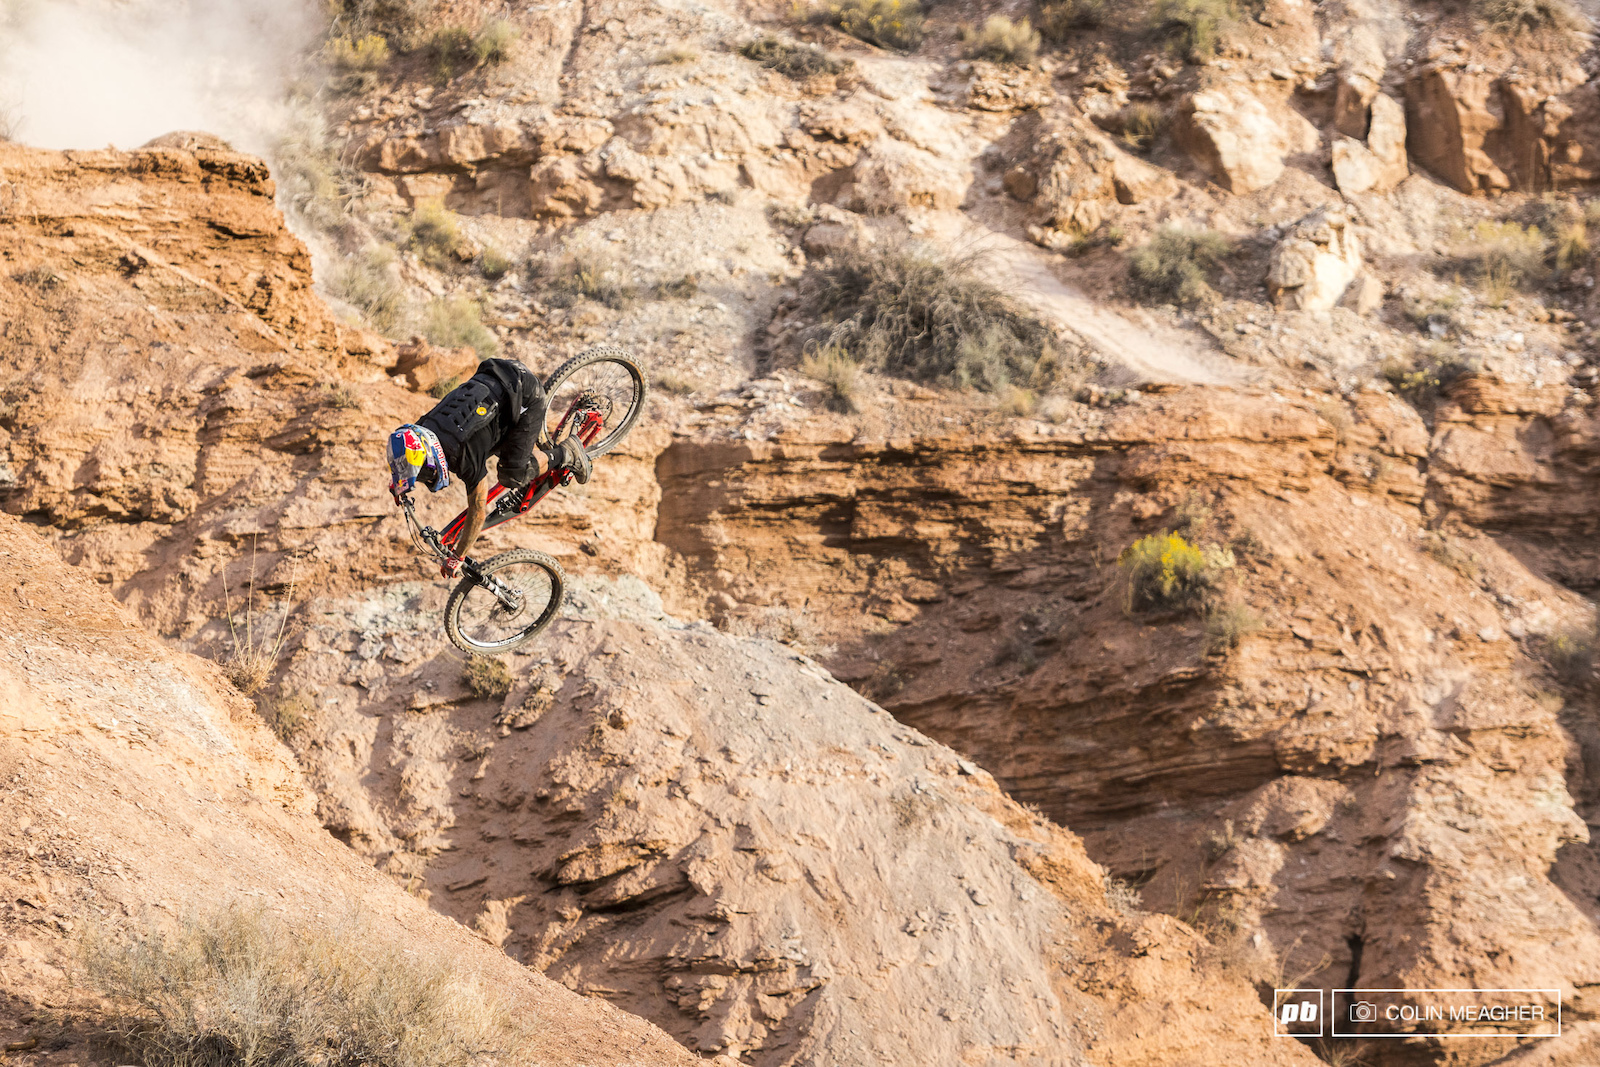 practicing the for the 2016 Redbull Rampage held outside of Virgin UT